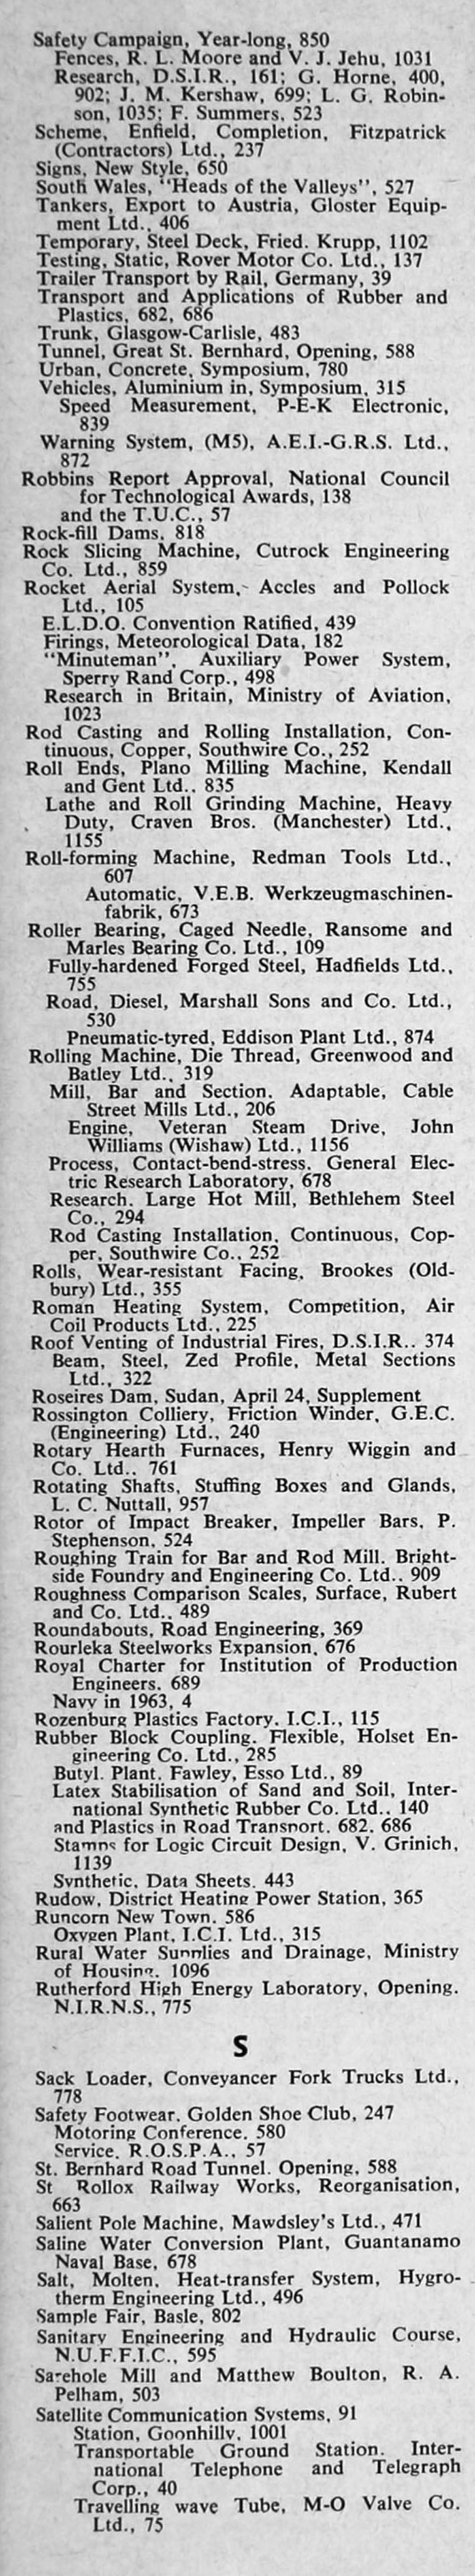 The Engineer 1964 Jan-Jun: Index: Sections 2 and 3